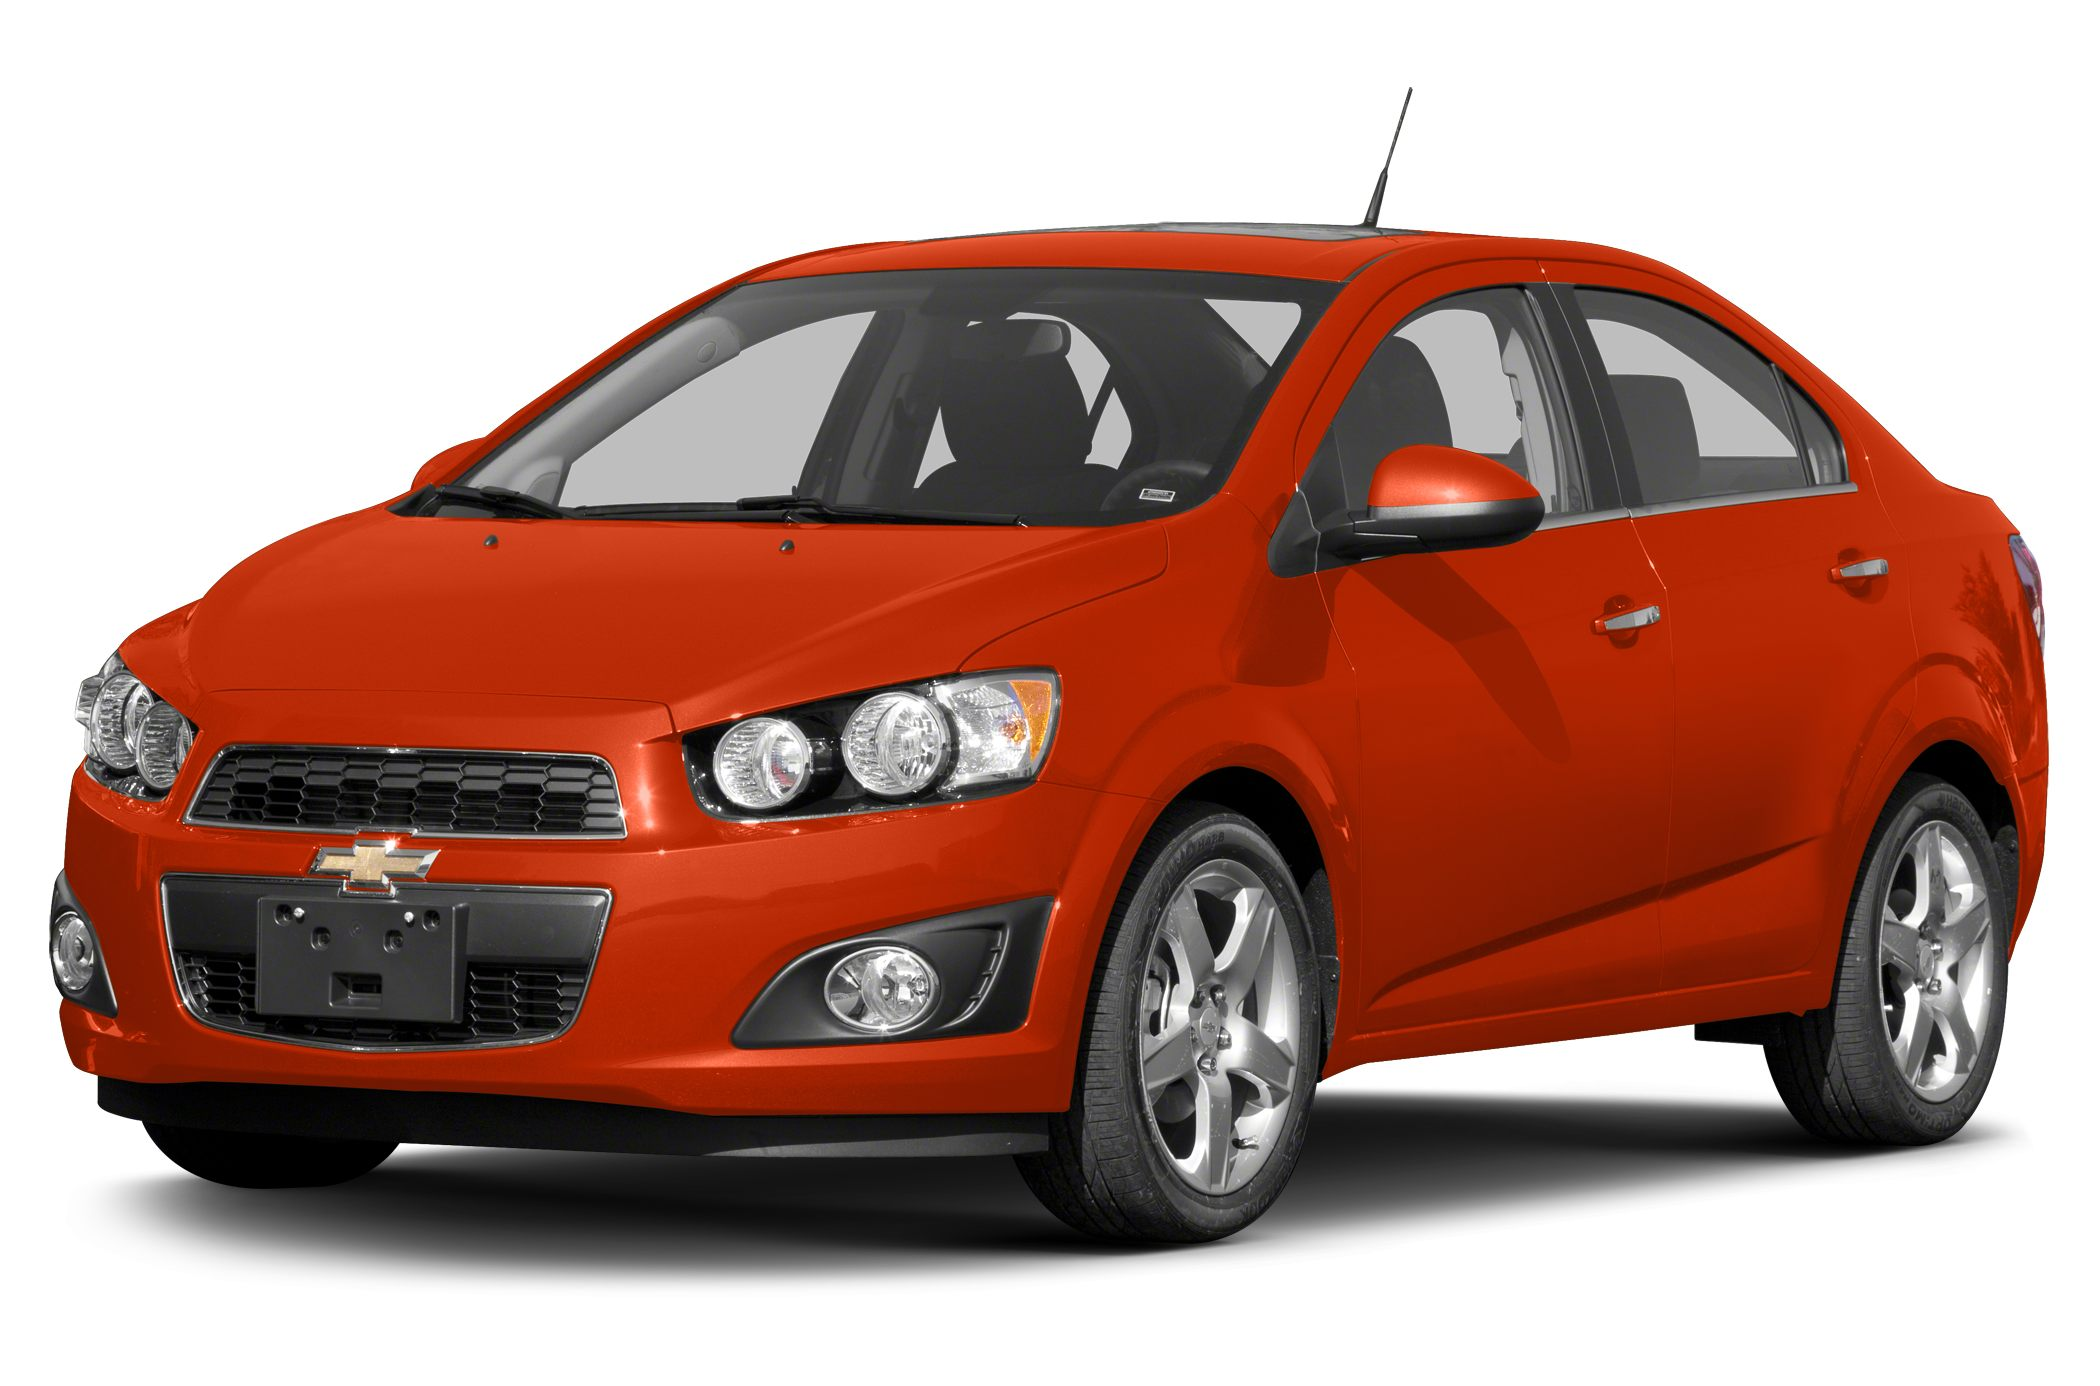 2013 Chevrolet Sonic LT Sedan for sale in Beckley for $13,999 with 21,192 miles.